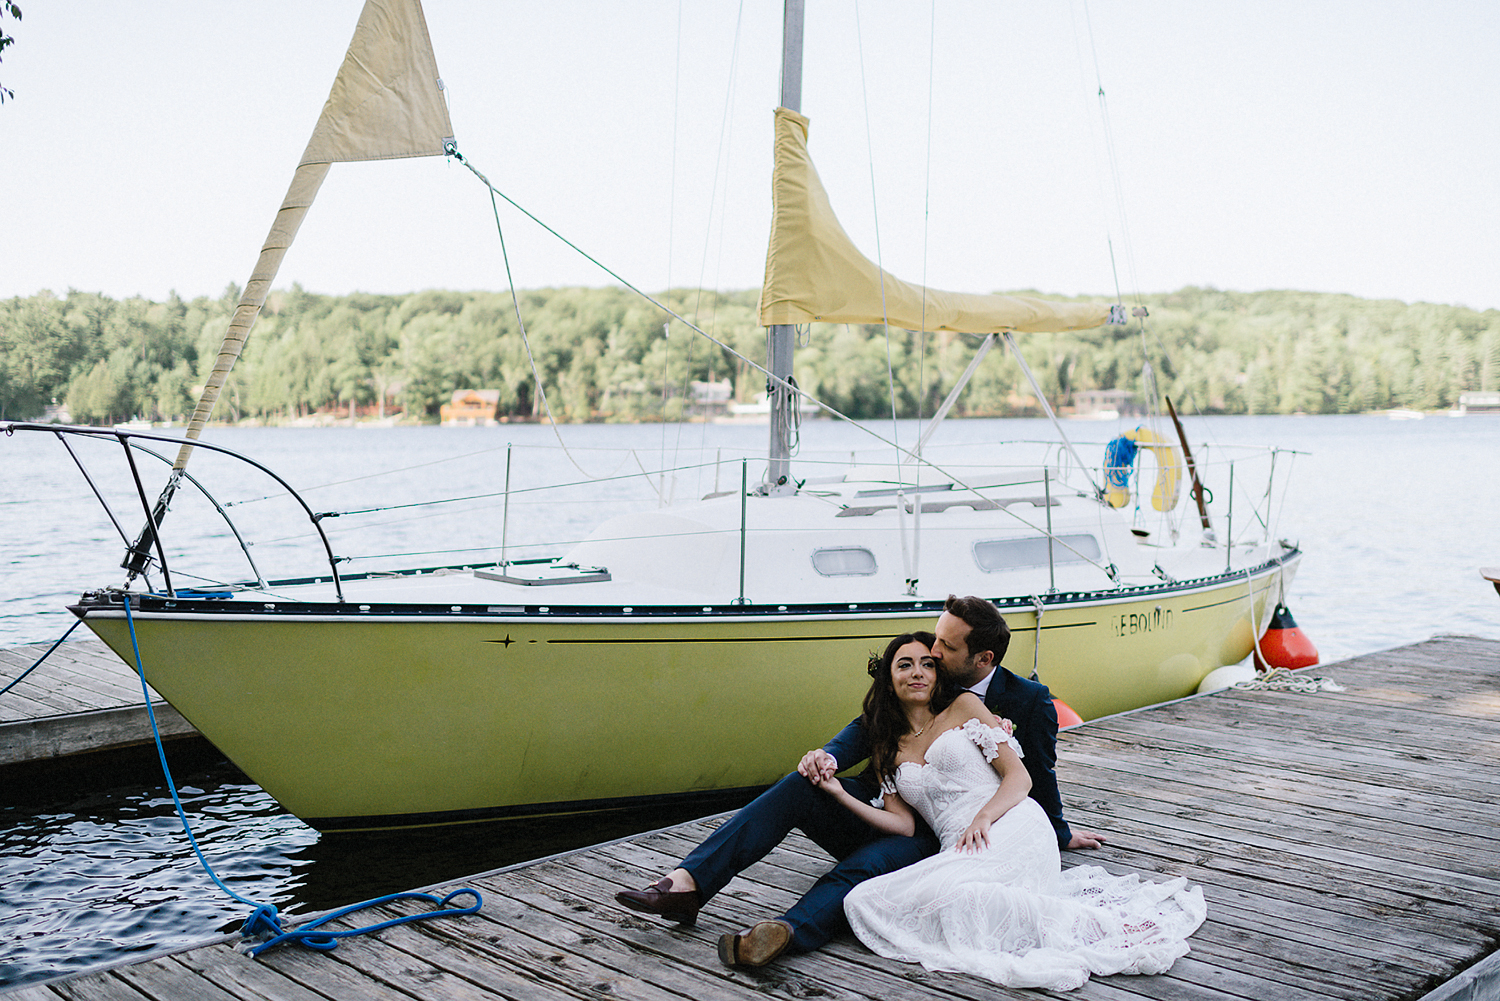 Muskoka-Cottage-Wedding-Photography-Photographer_Photojournalistic-Documentary-Wedding-Photography_Vintage-Bride-Lovers-Land-Dress_Rue-Des-Seins_Forest-Ceremony-Bride-and-Groom-Intimate-moment-on-Sailboat.jpg